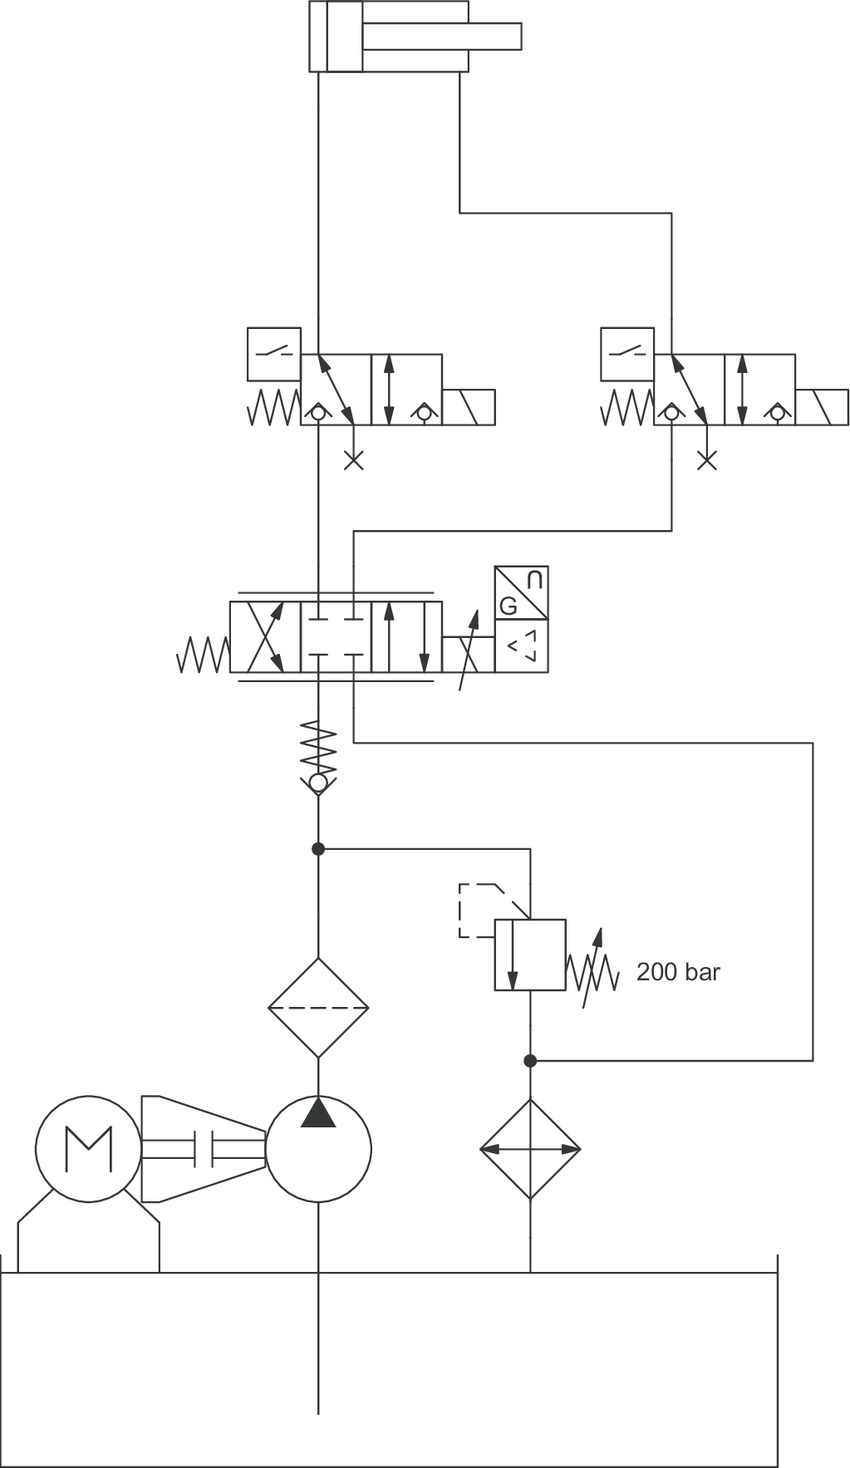 hight resolution of 2 hydraulic circuit diagram for a press